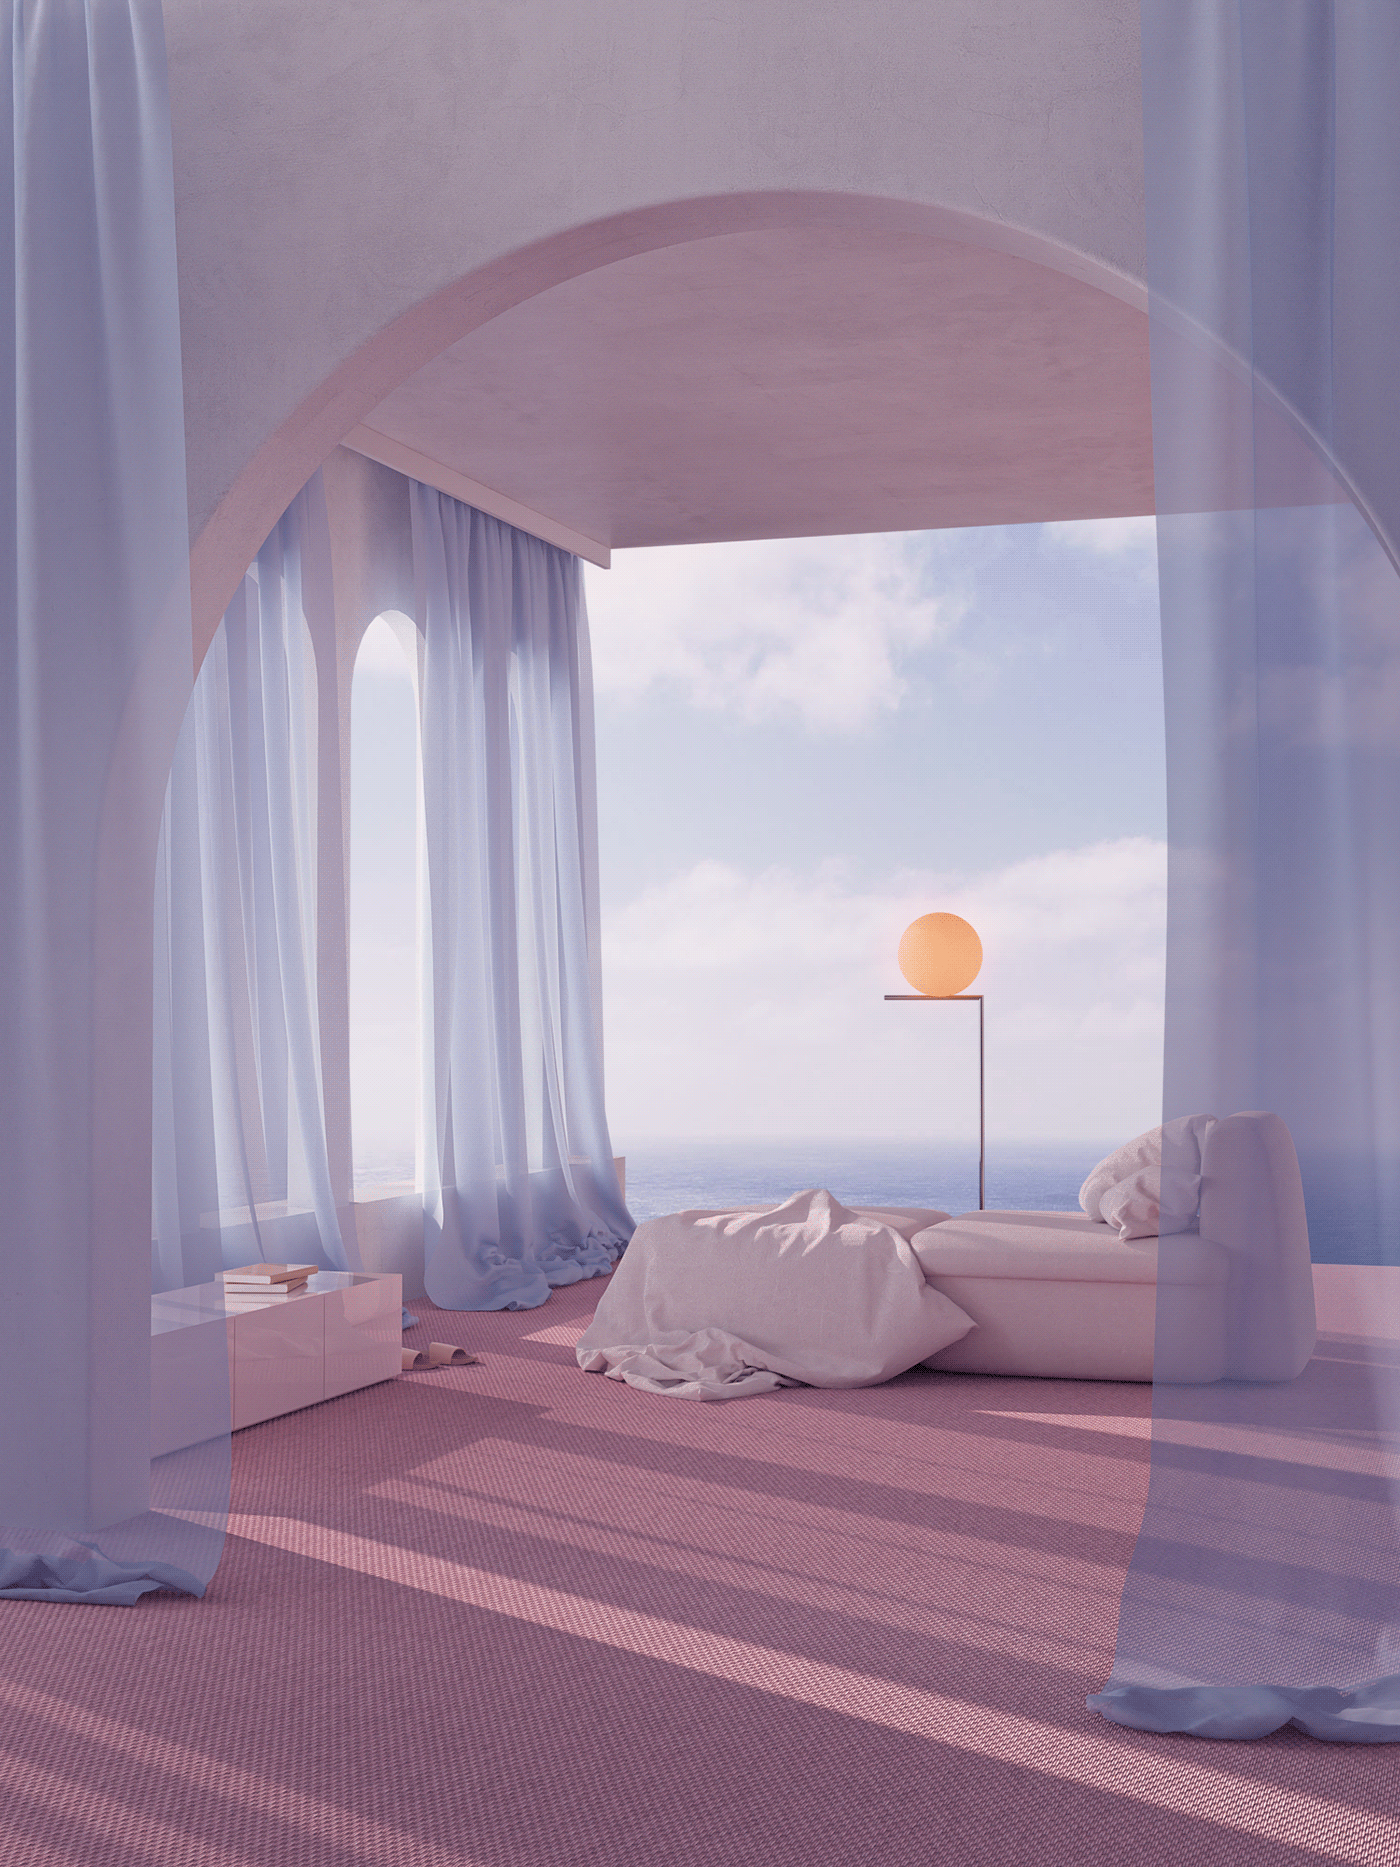 3D minimal surreal abstract pastel Interior architecture aesthetic pink modern